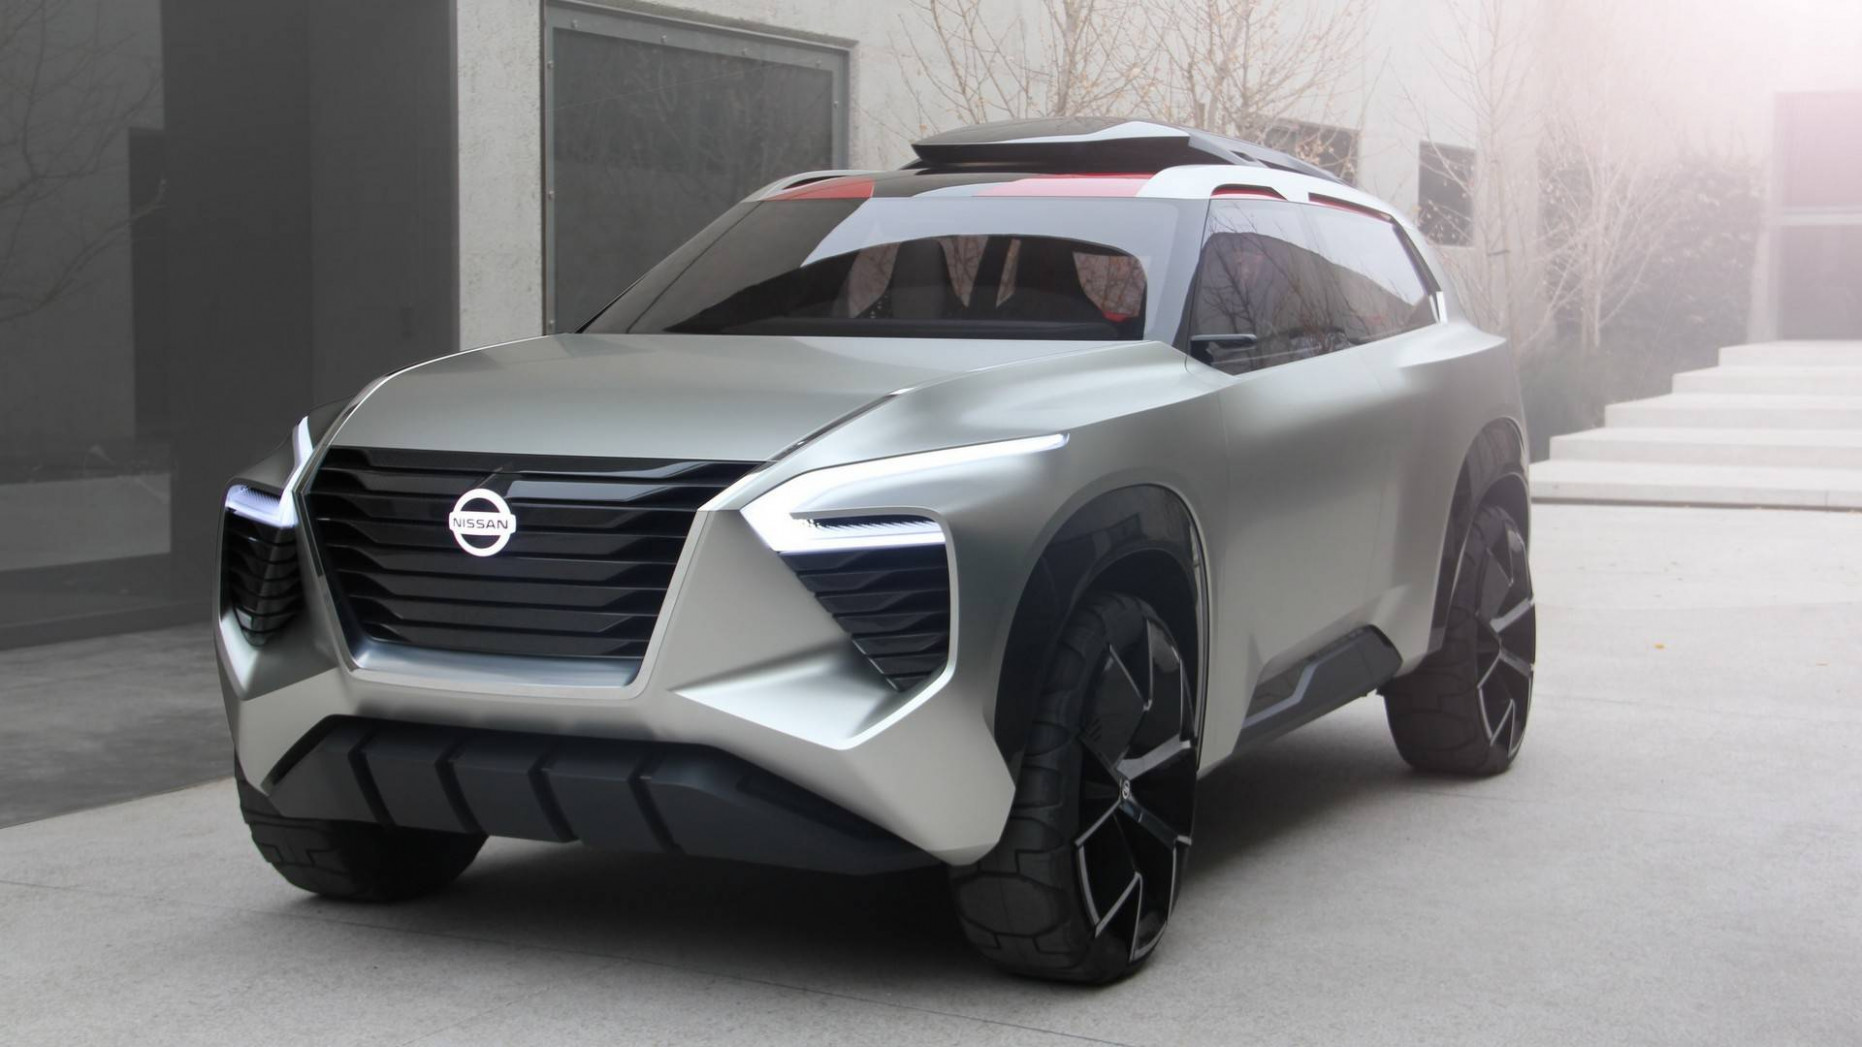 New Concept Nissan Xmotion 2022